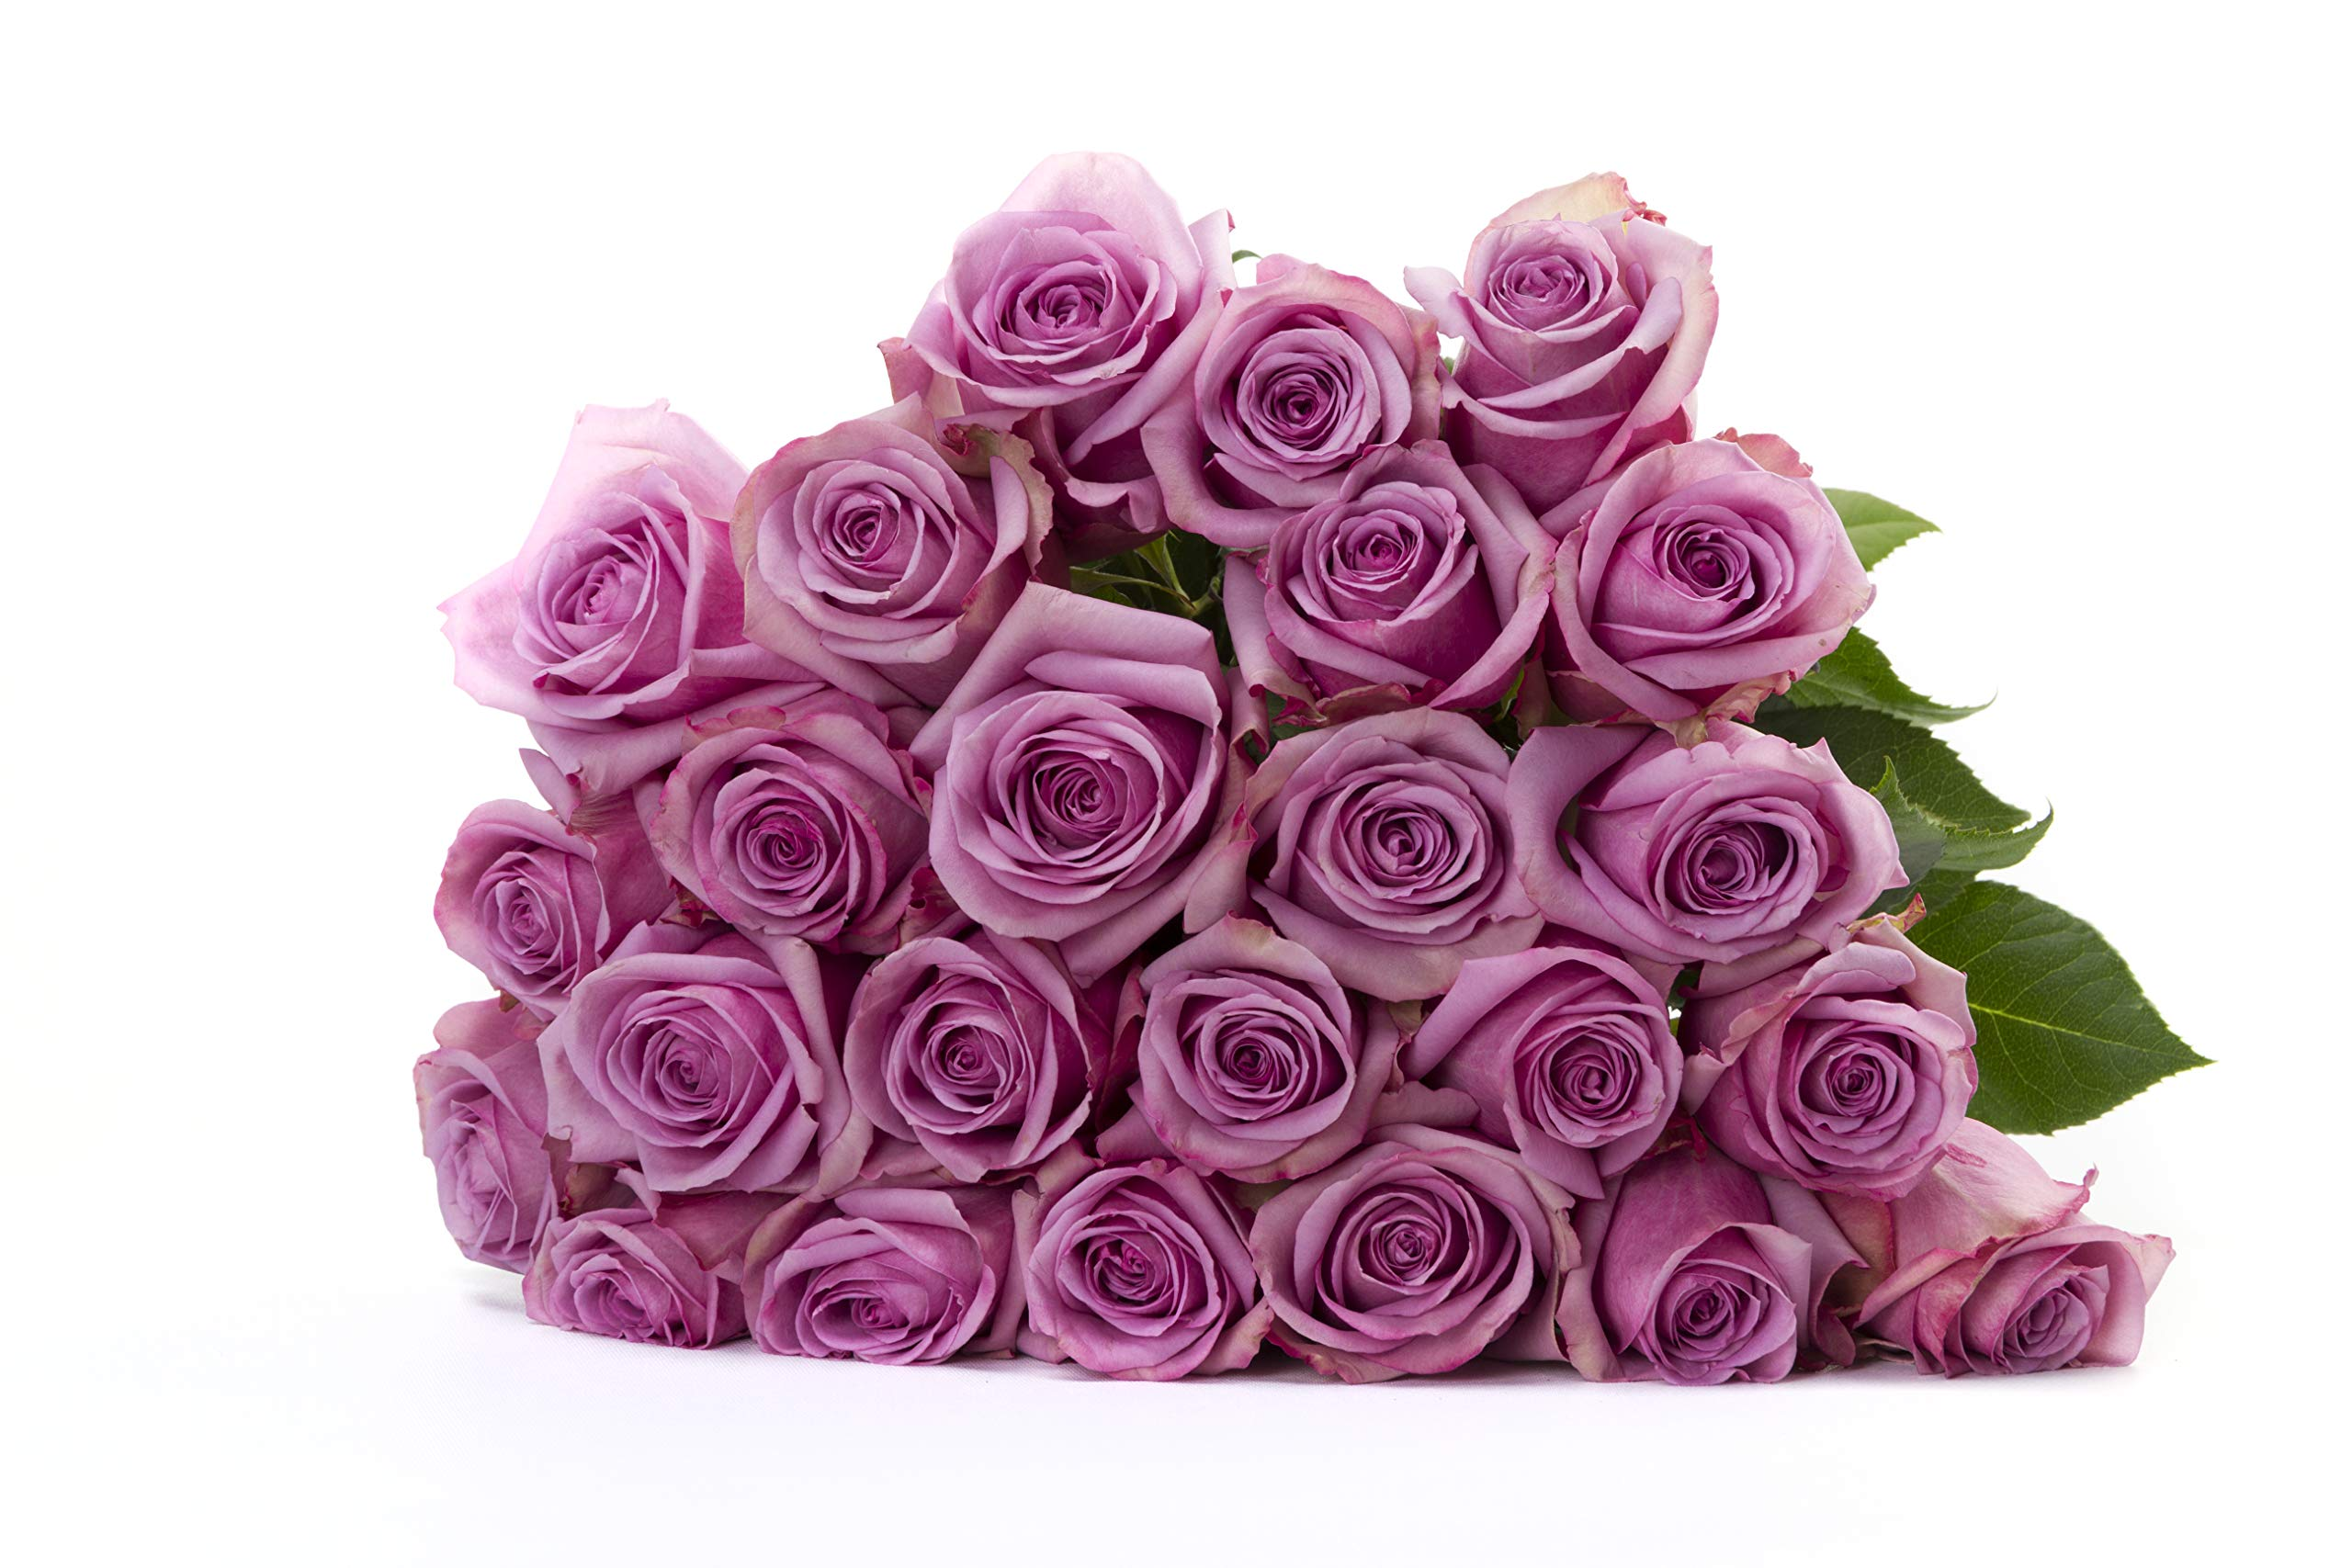 Martha Stewart Roses by BloomsyBox - Two Dozen Lavender Cool Water Roses Selected by Martha and Hand-Tied, Long Vase Life